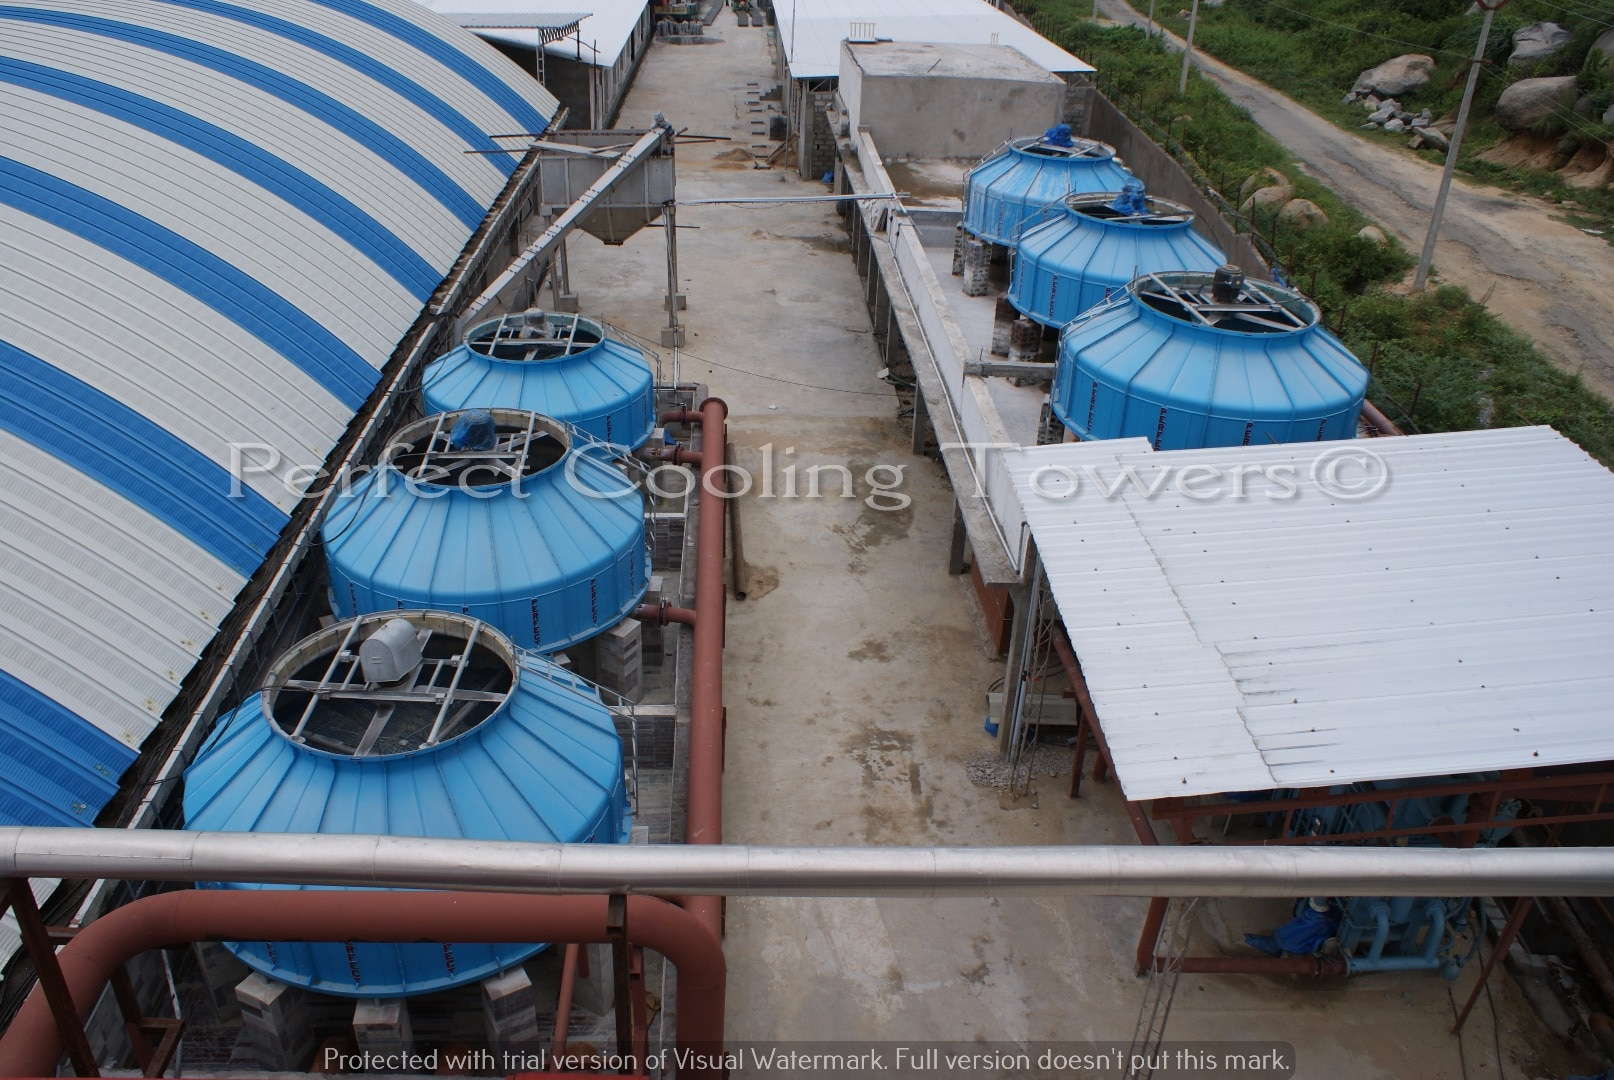 Perfect Cooling Towers Pvt Ltd  +94482 05694